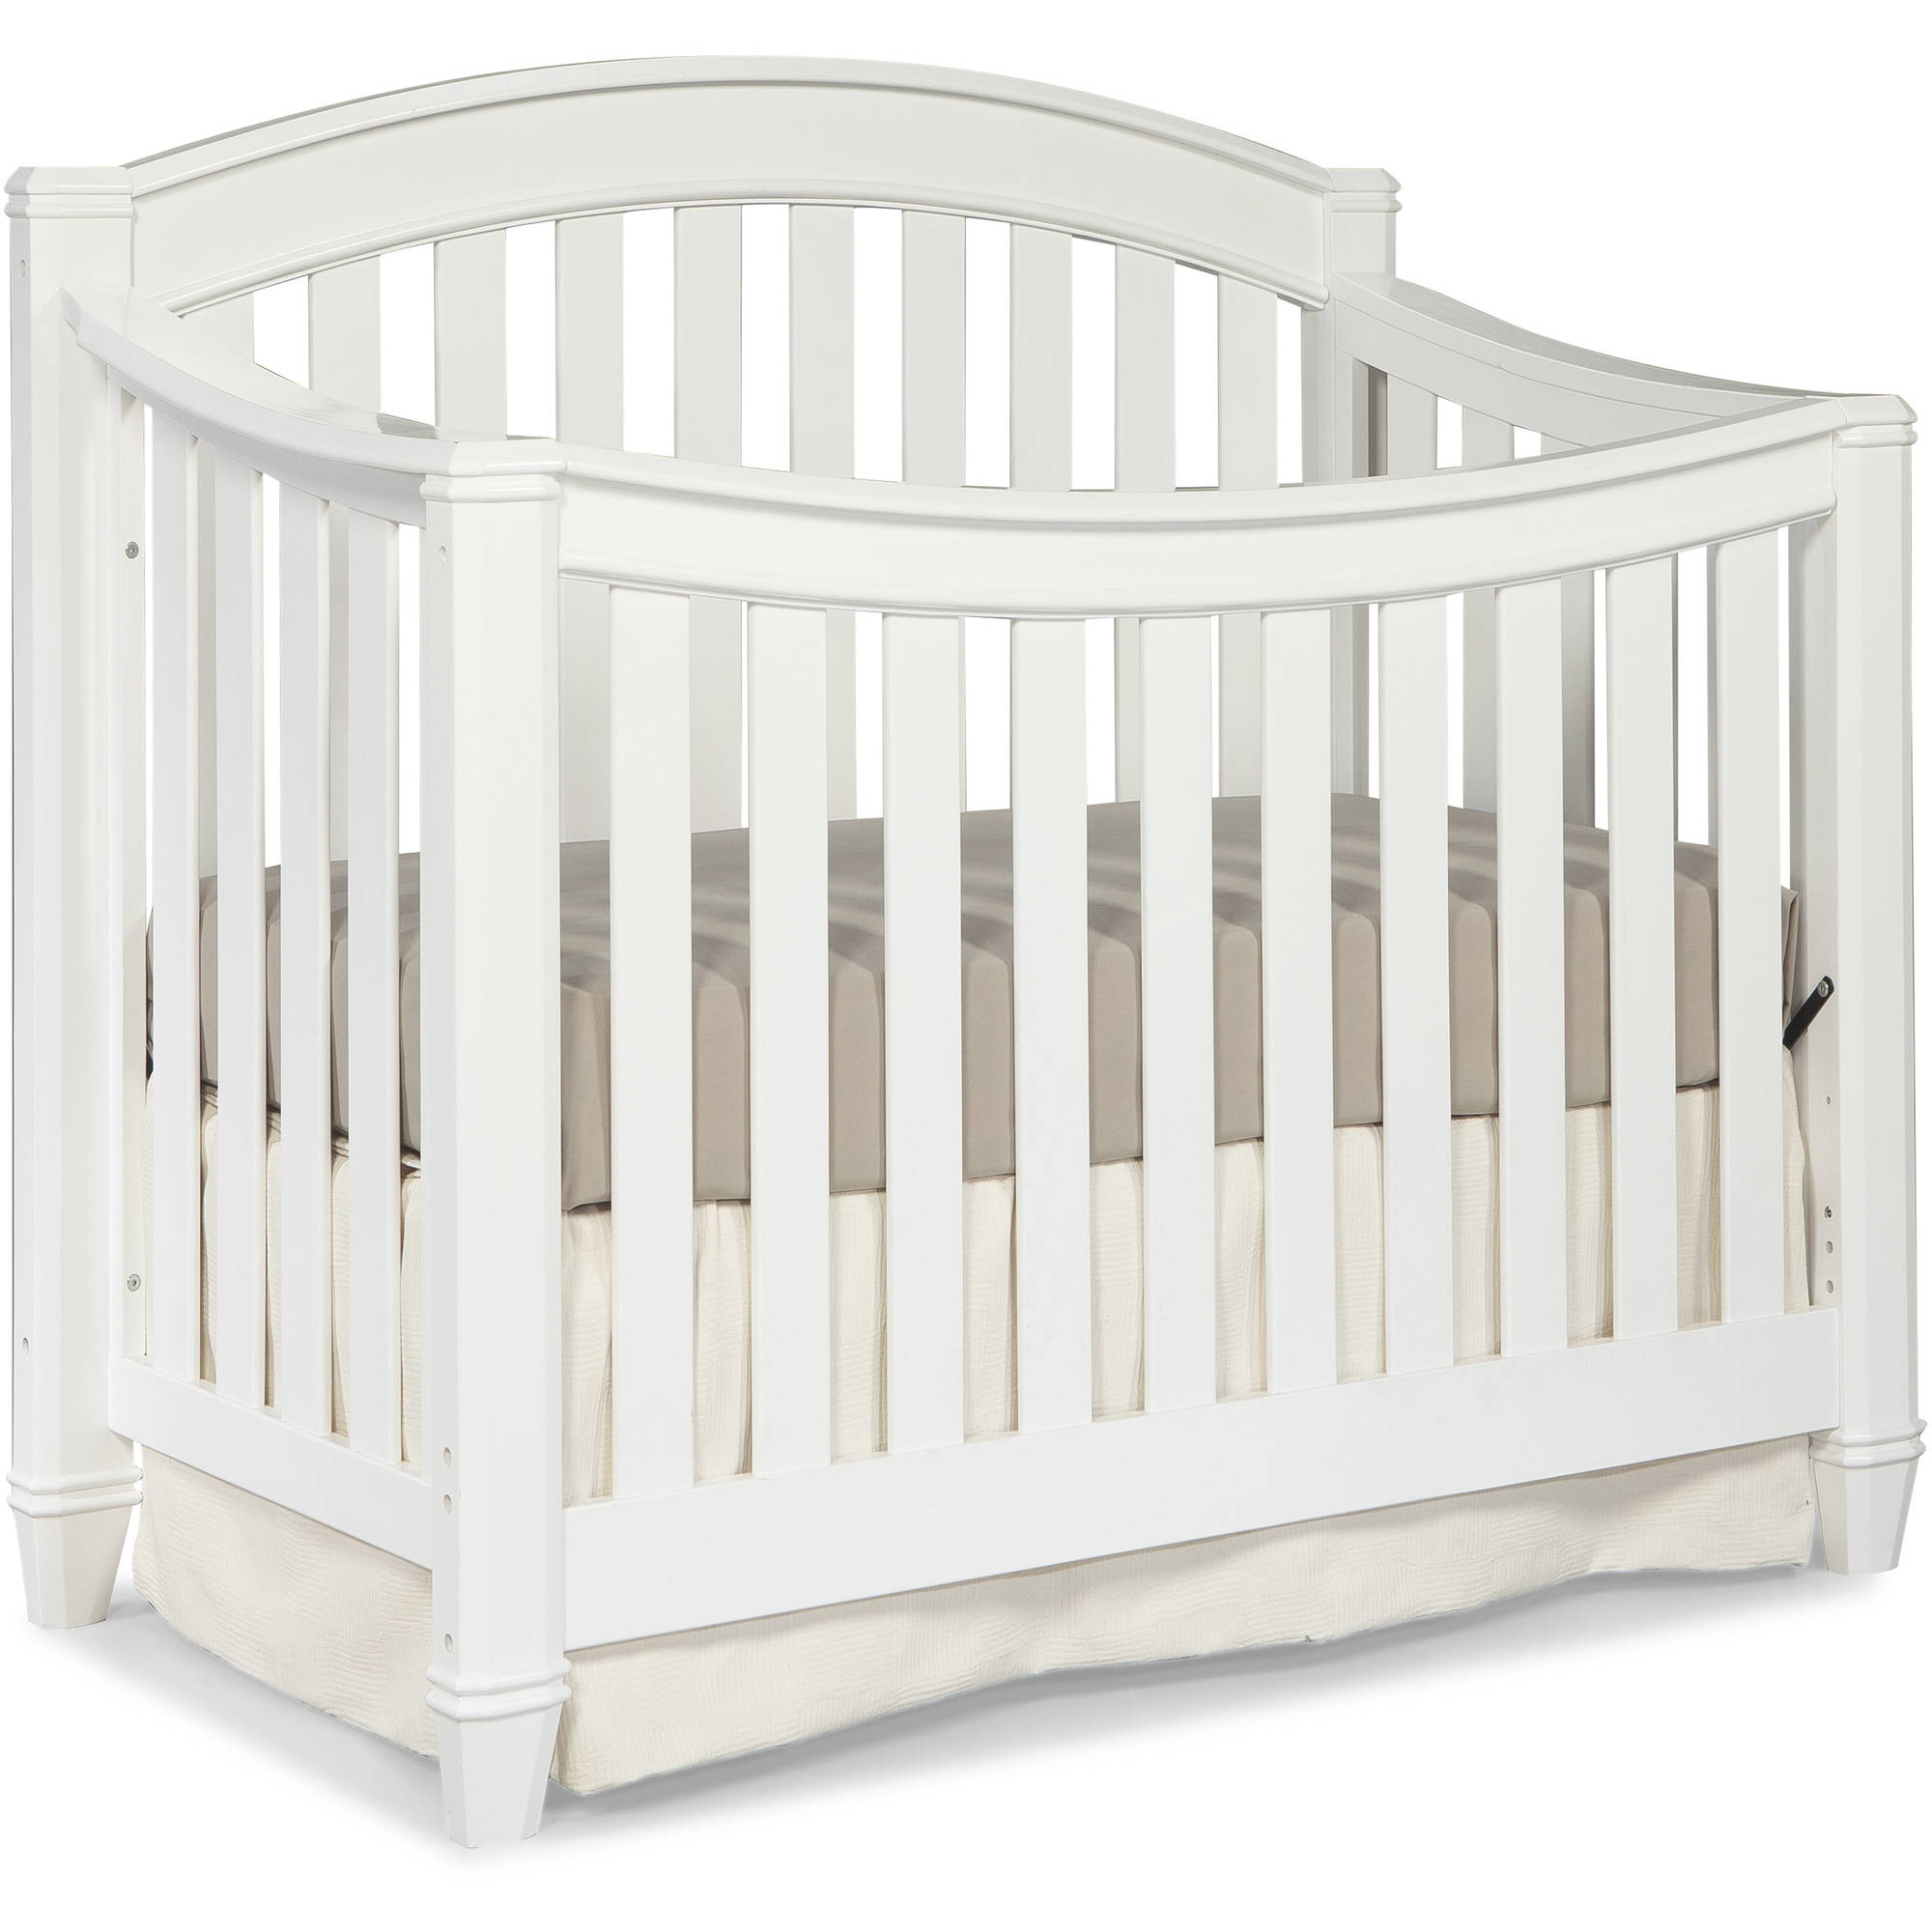 Thomasville Kids Highlands 4 In 1 Convertible Crib White